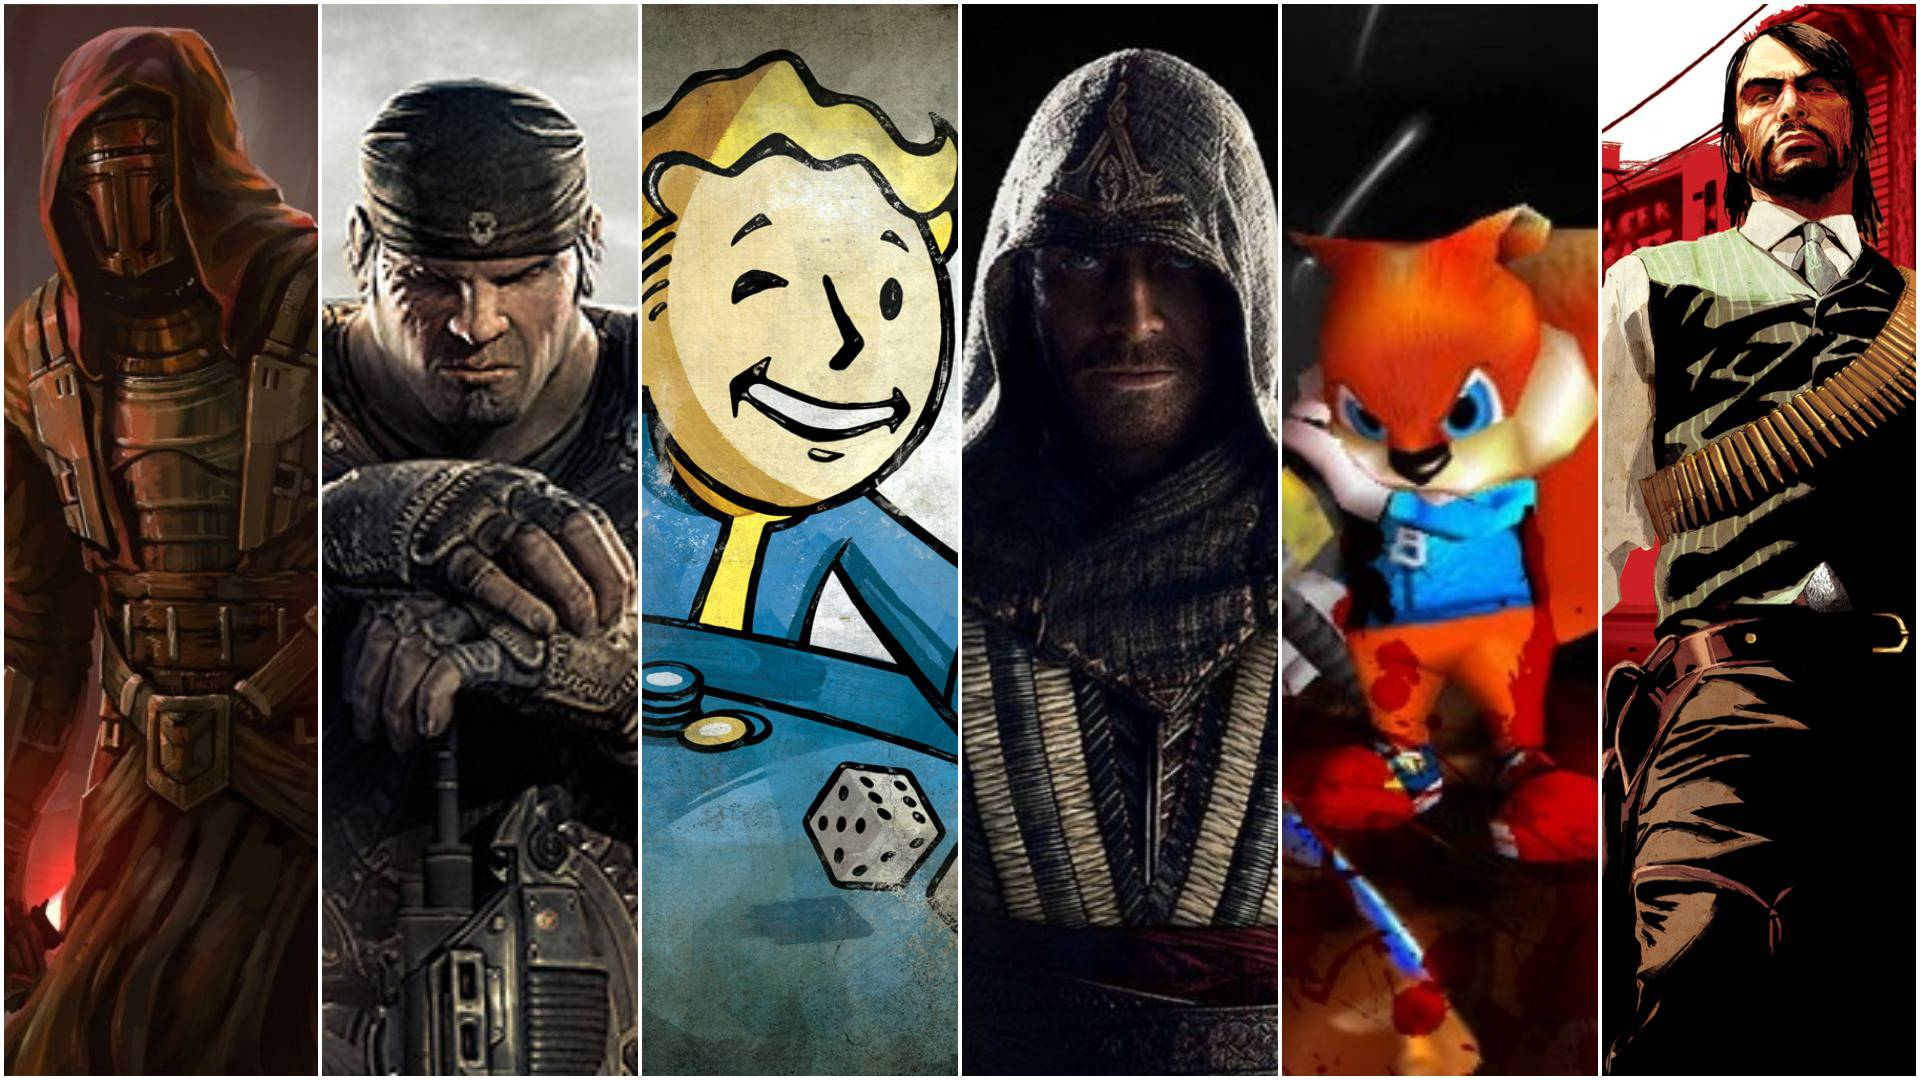 5 Video Game Franchises We'd Love To See As Movies